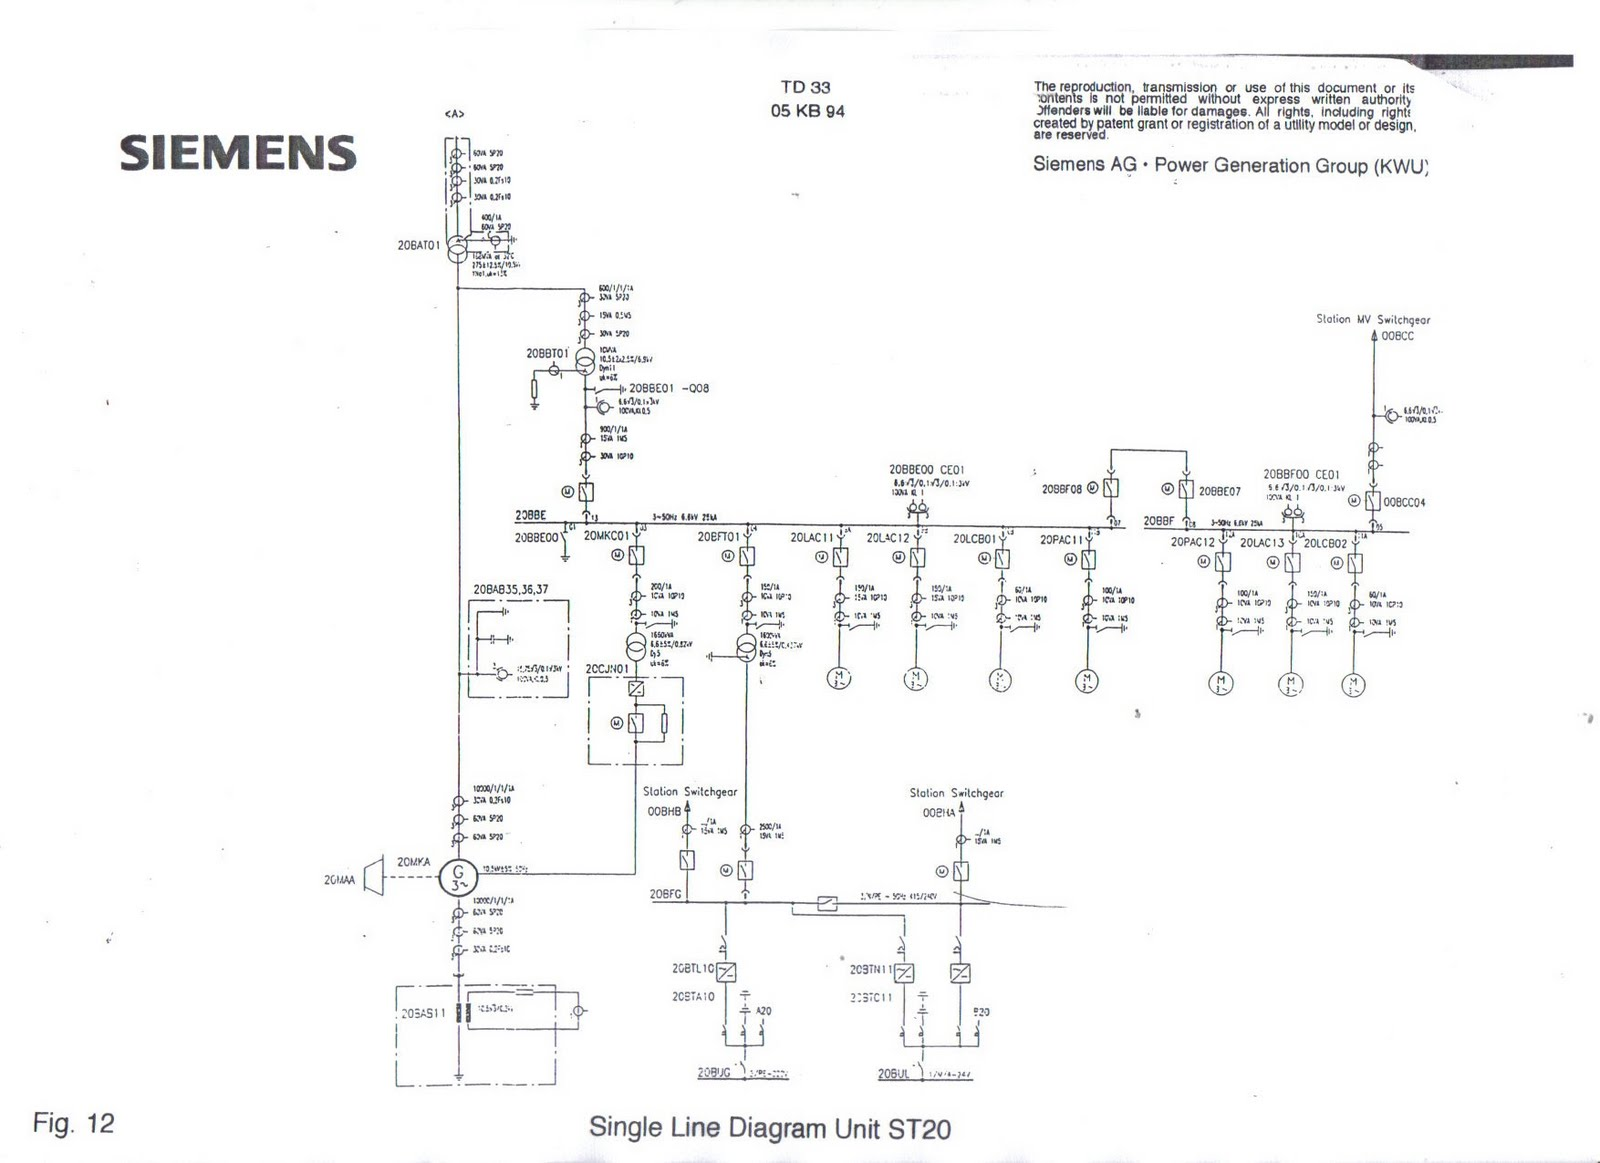 Electrical One Line Diagram Free http://miao0810pei.blogspot.com/2010/06/gt-and-st-single-line-diagram.html